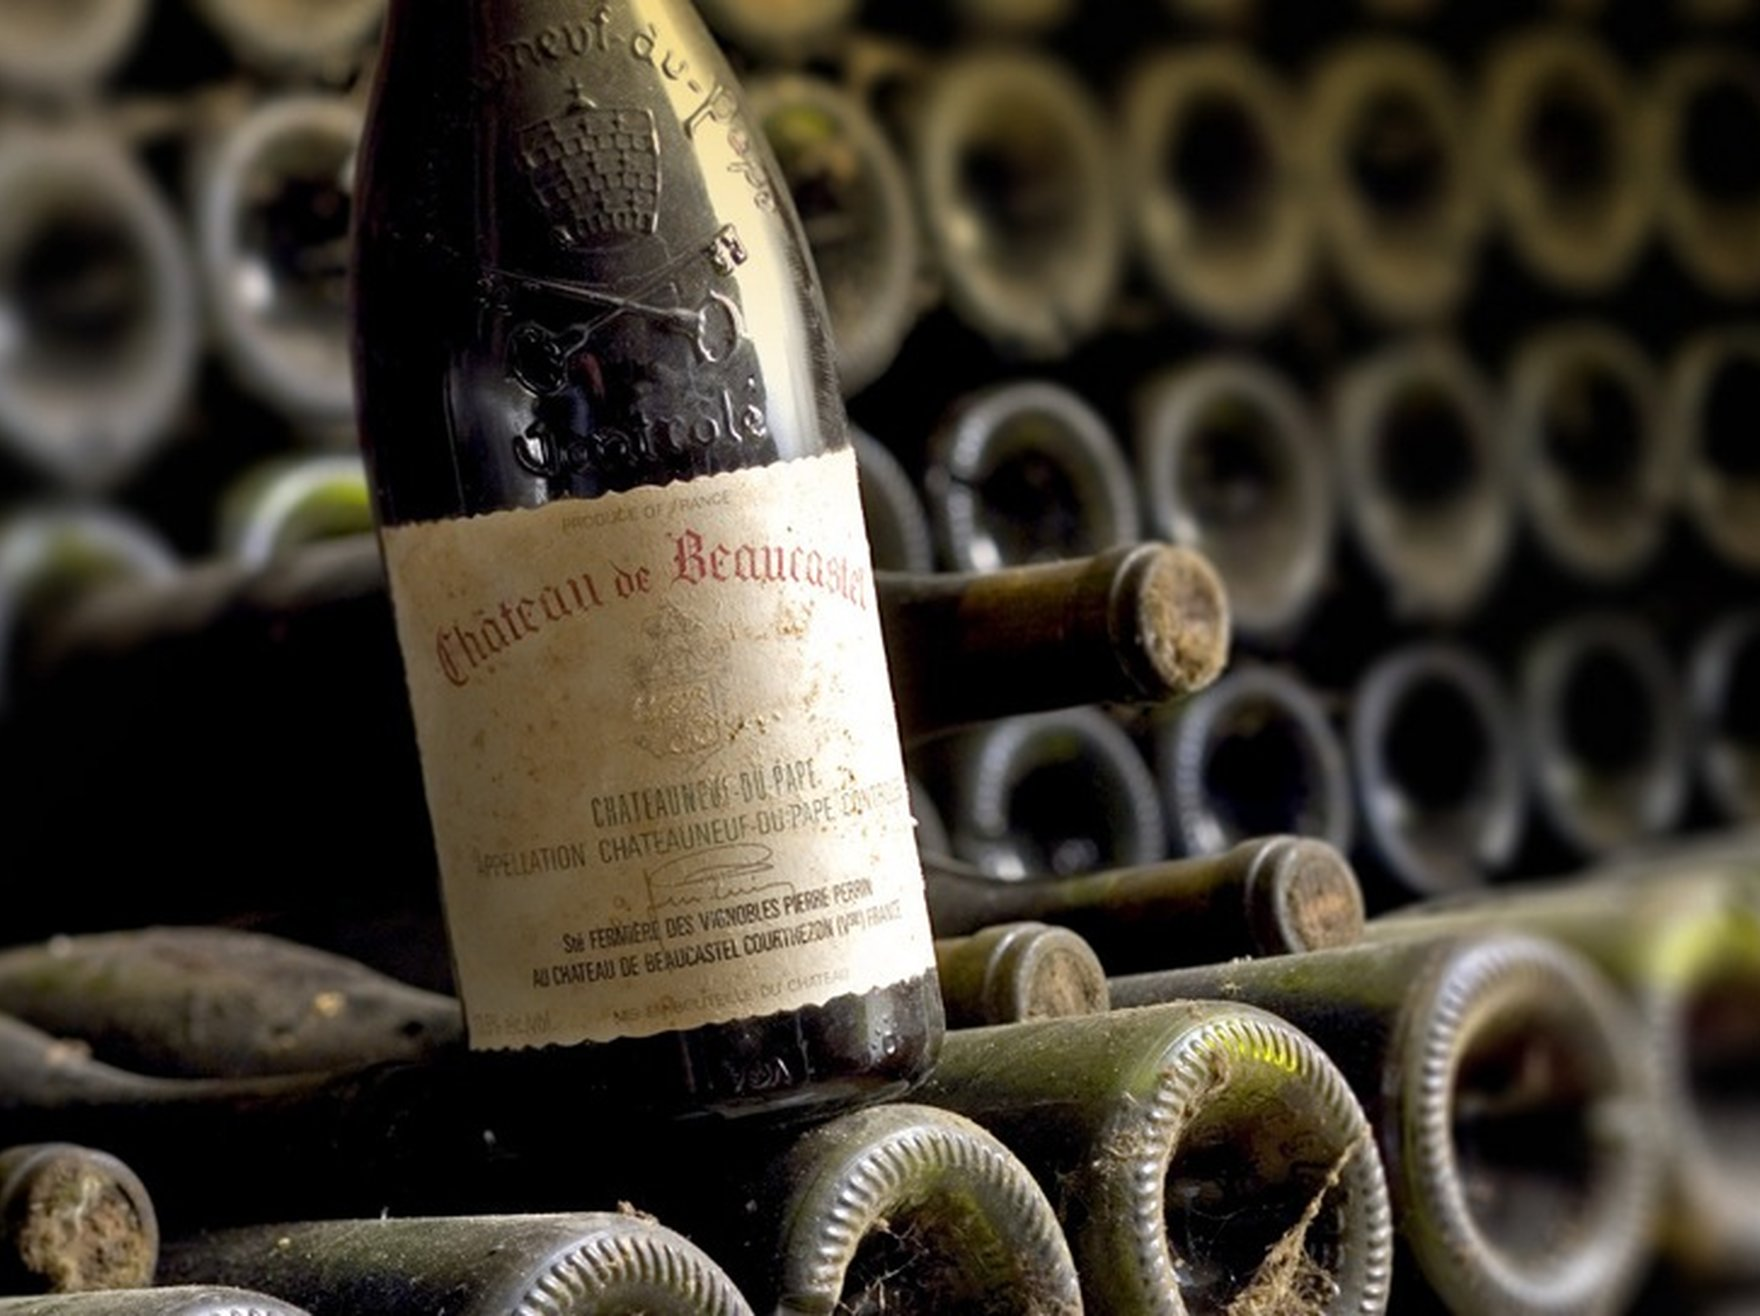 Wine Dinner with Chateau Beaucastel & Famille Perrin